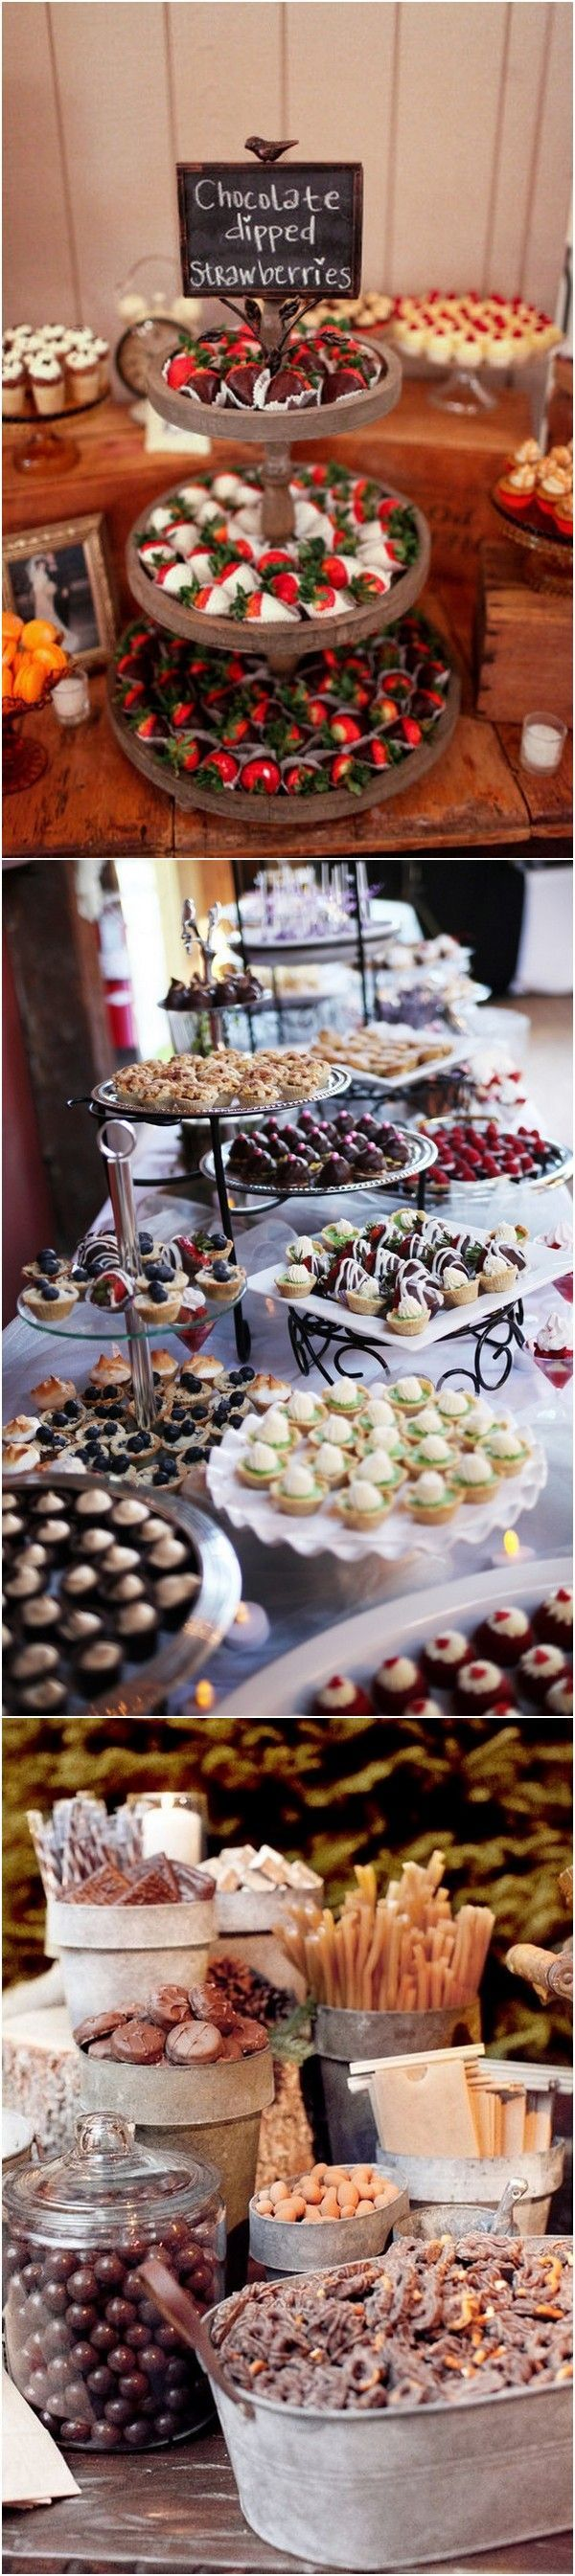 chic vintage wedding dessert decoration ideas